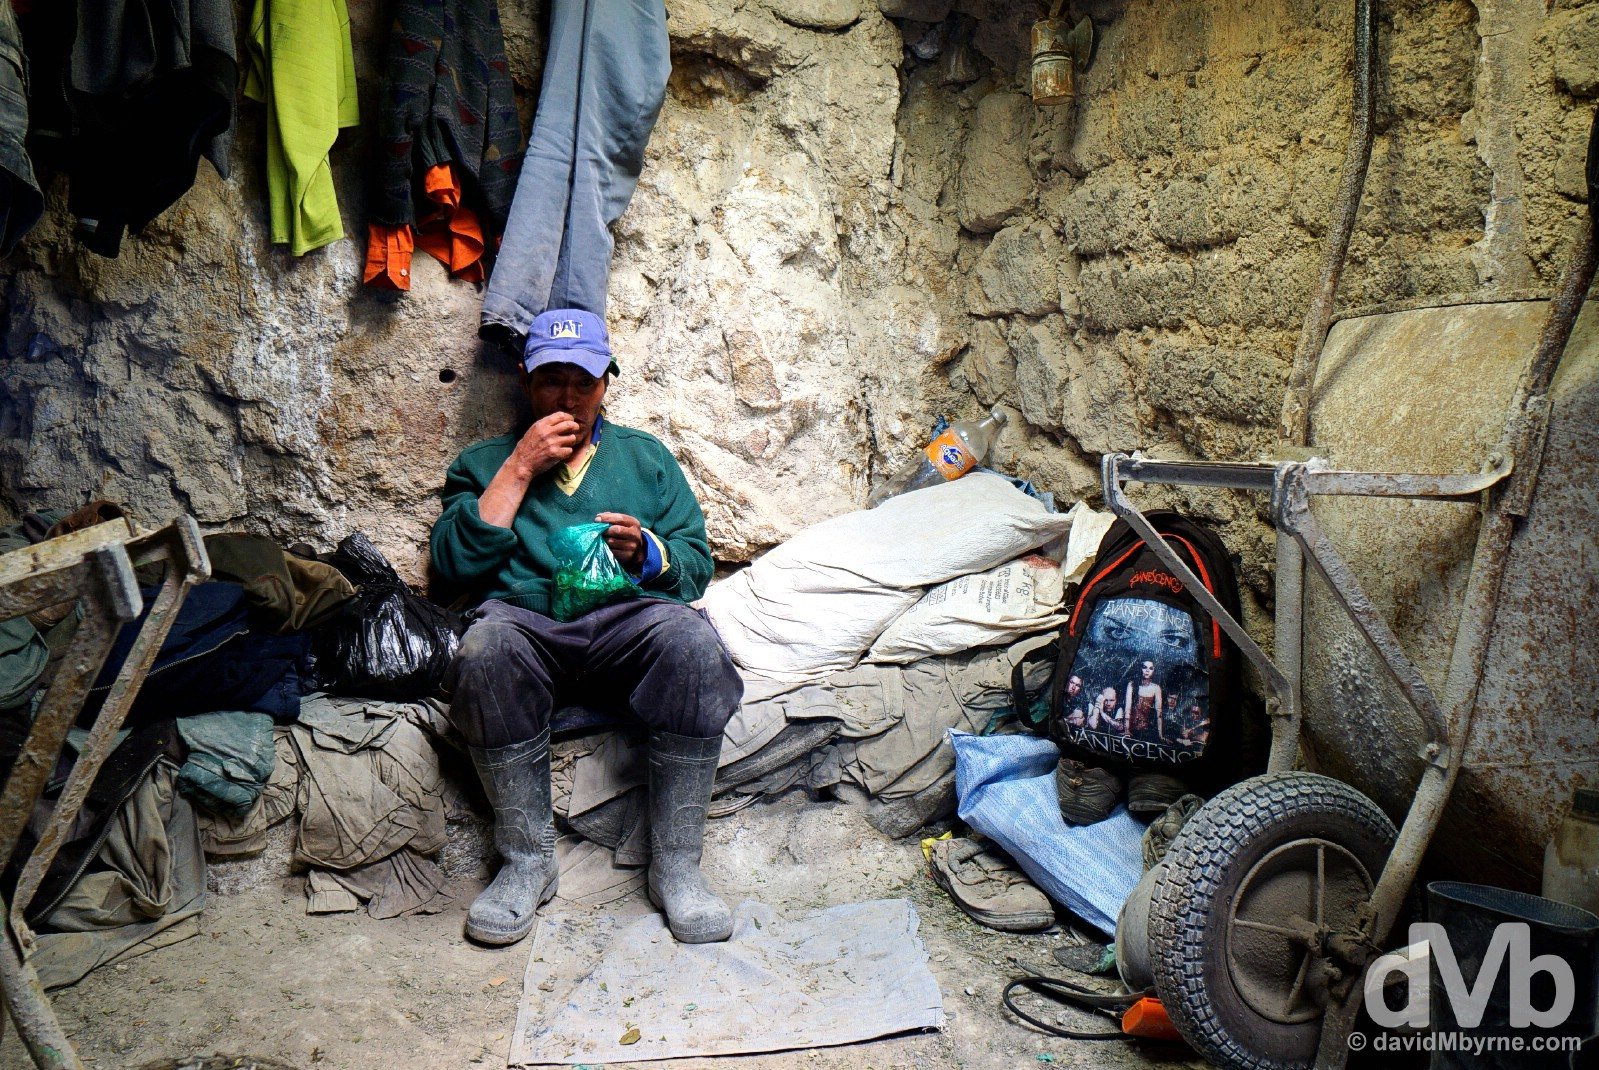 A miner chewing coca leaves during a break from work in the Cerro Rico Mines, Potosi, Bolivia. September 1, 2015.